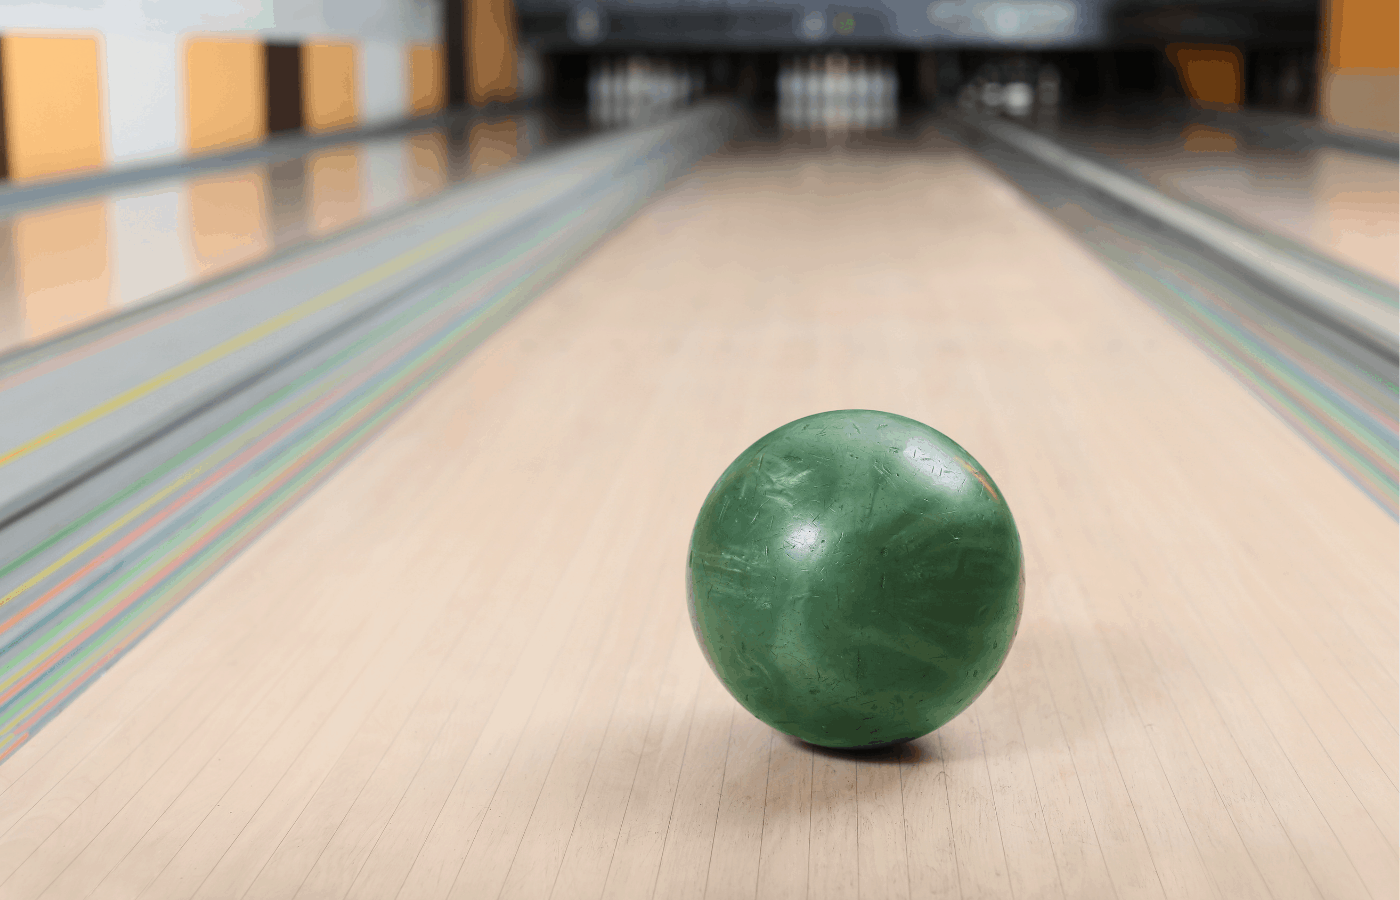 Is a Urethane Bowling Ball Good For Dry Lanes